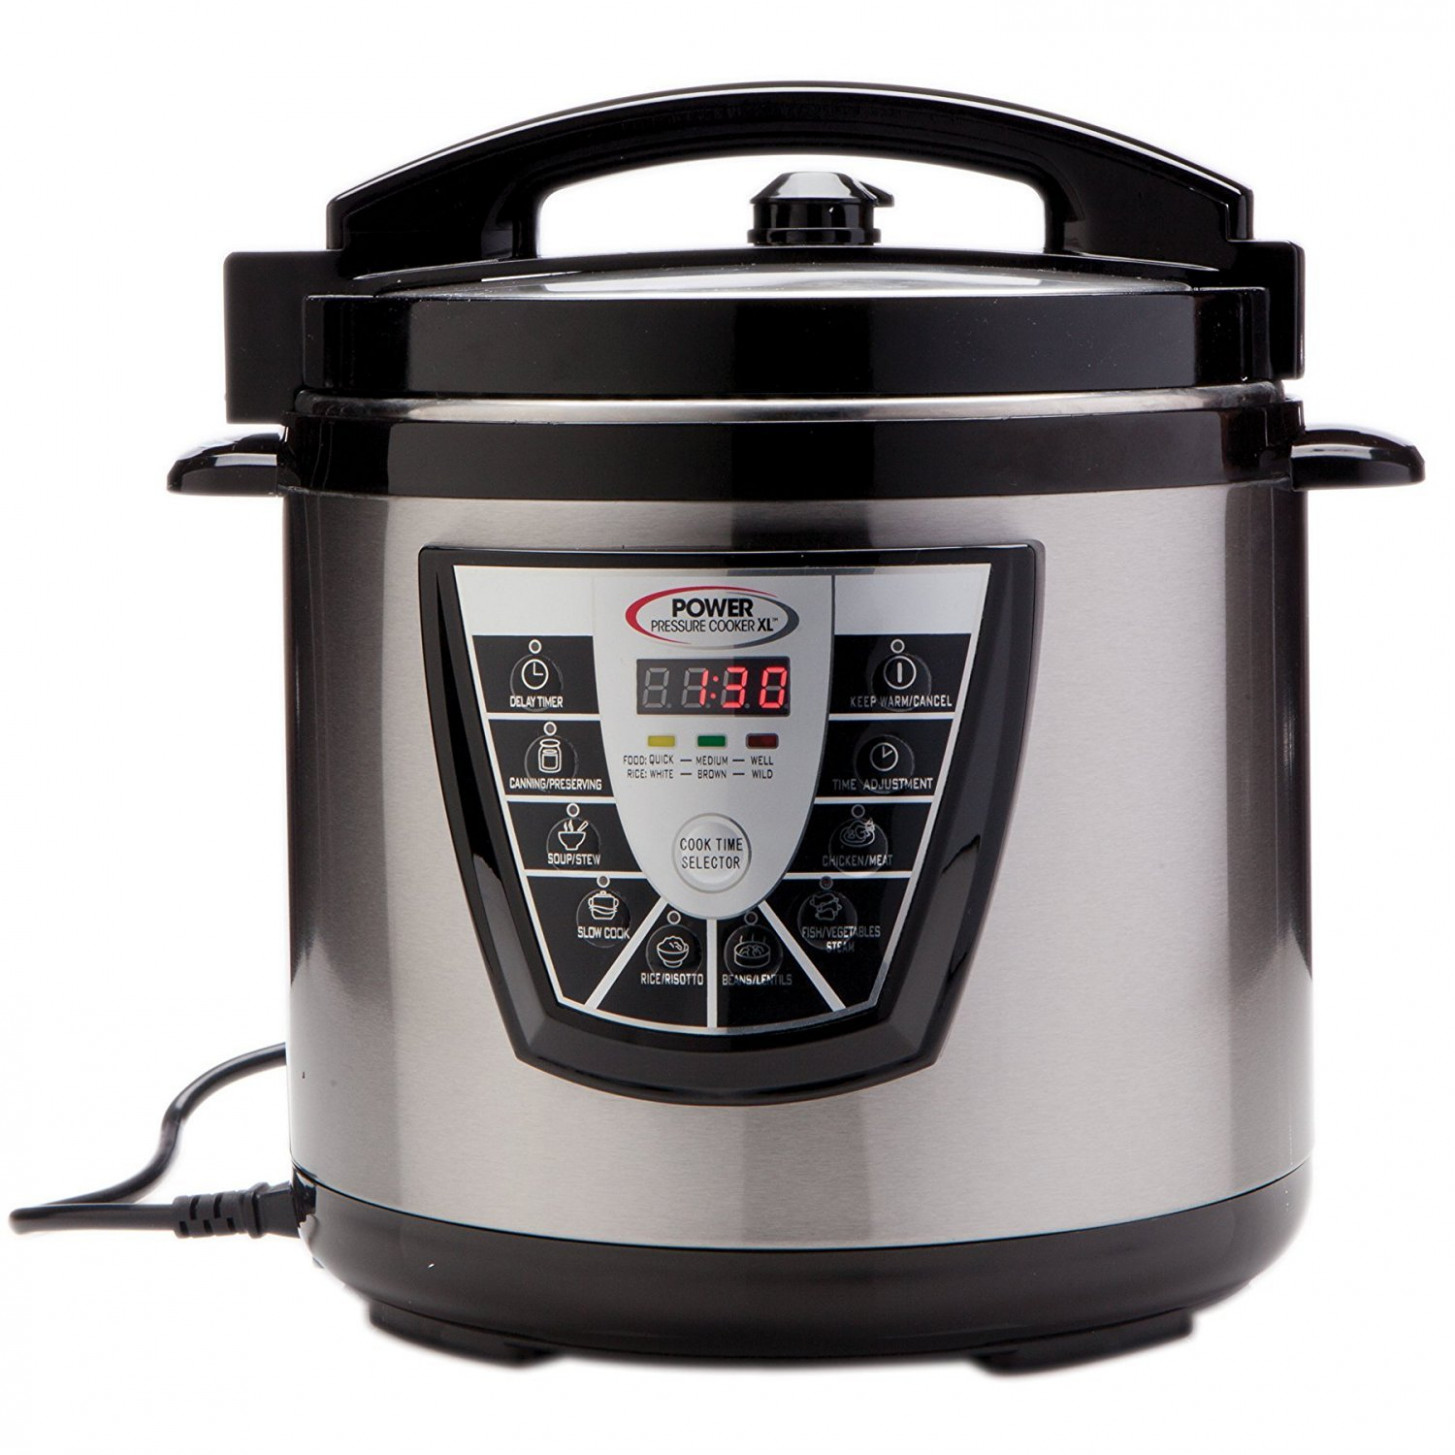 Power Pressure Cooker Xl Potato Soup - Power Pressure Cooker Xl Chicken Recipes